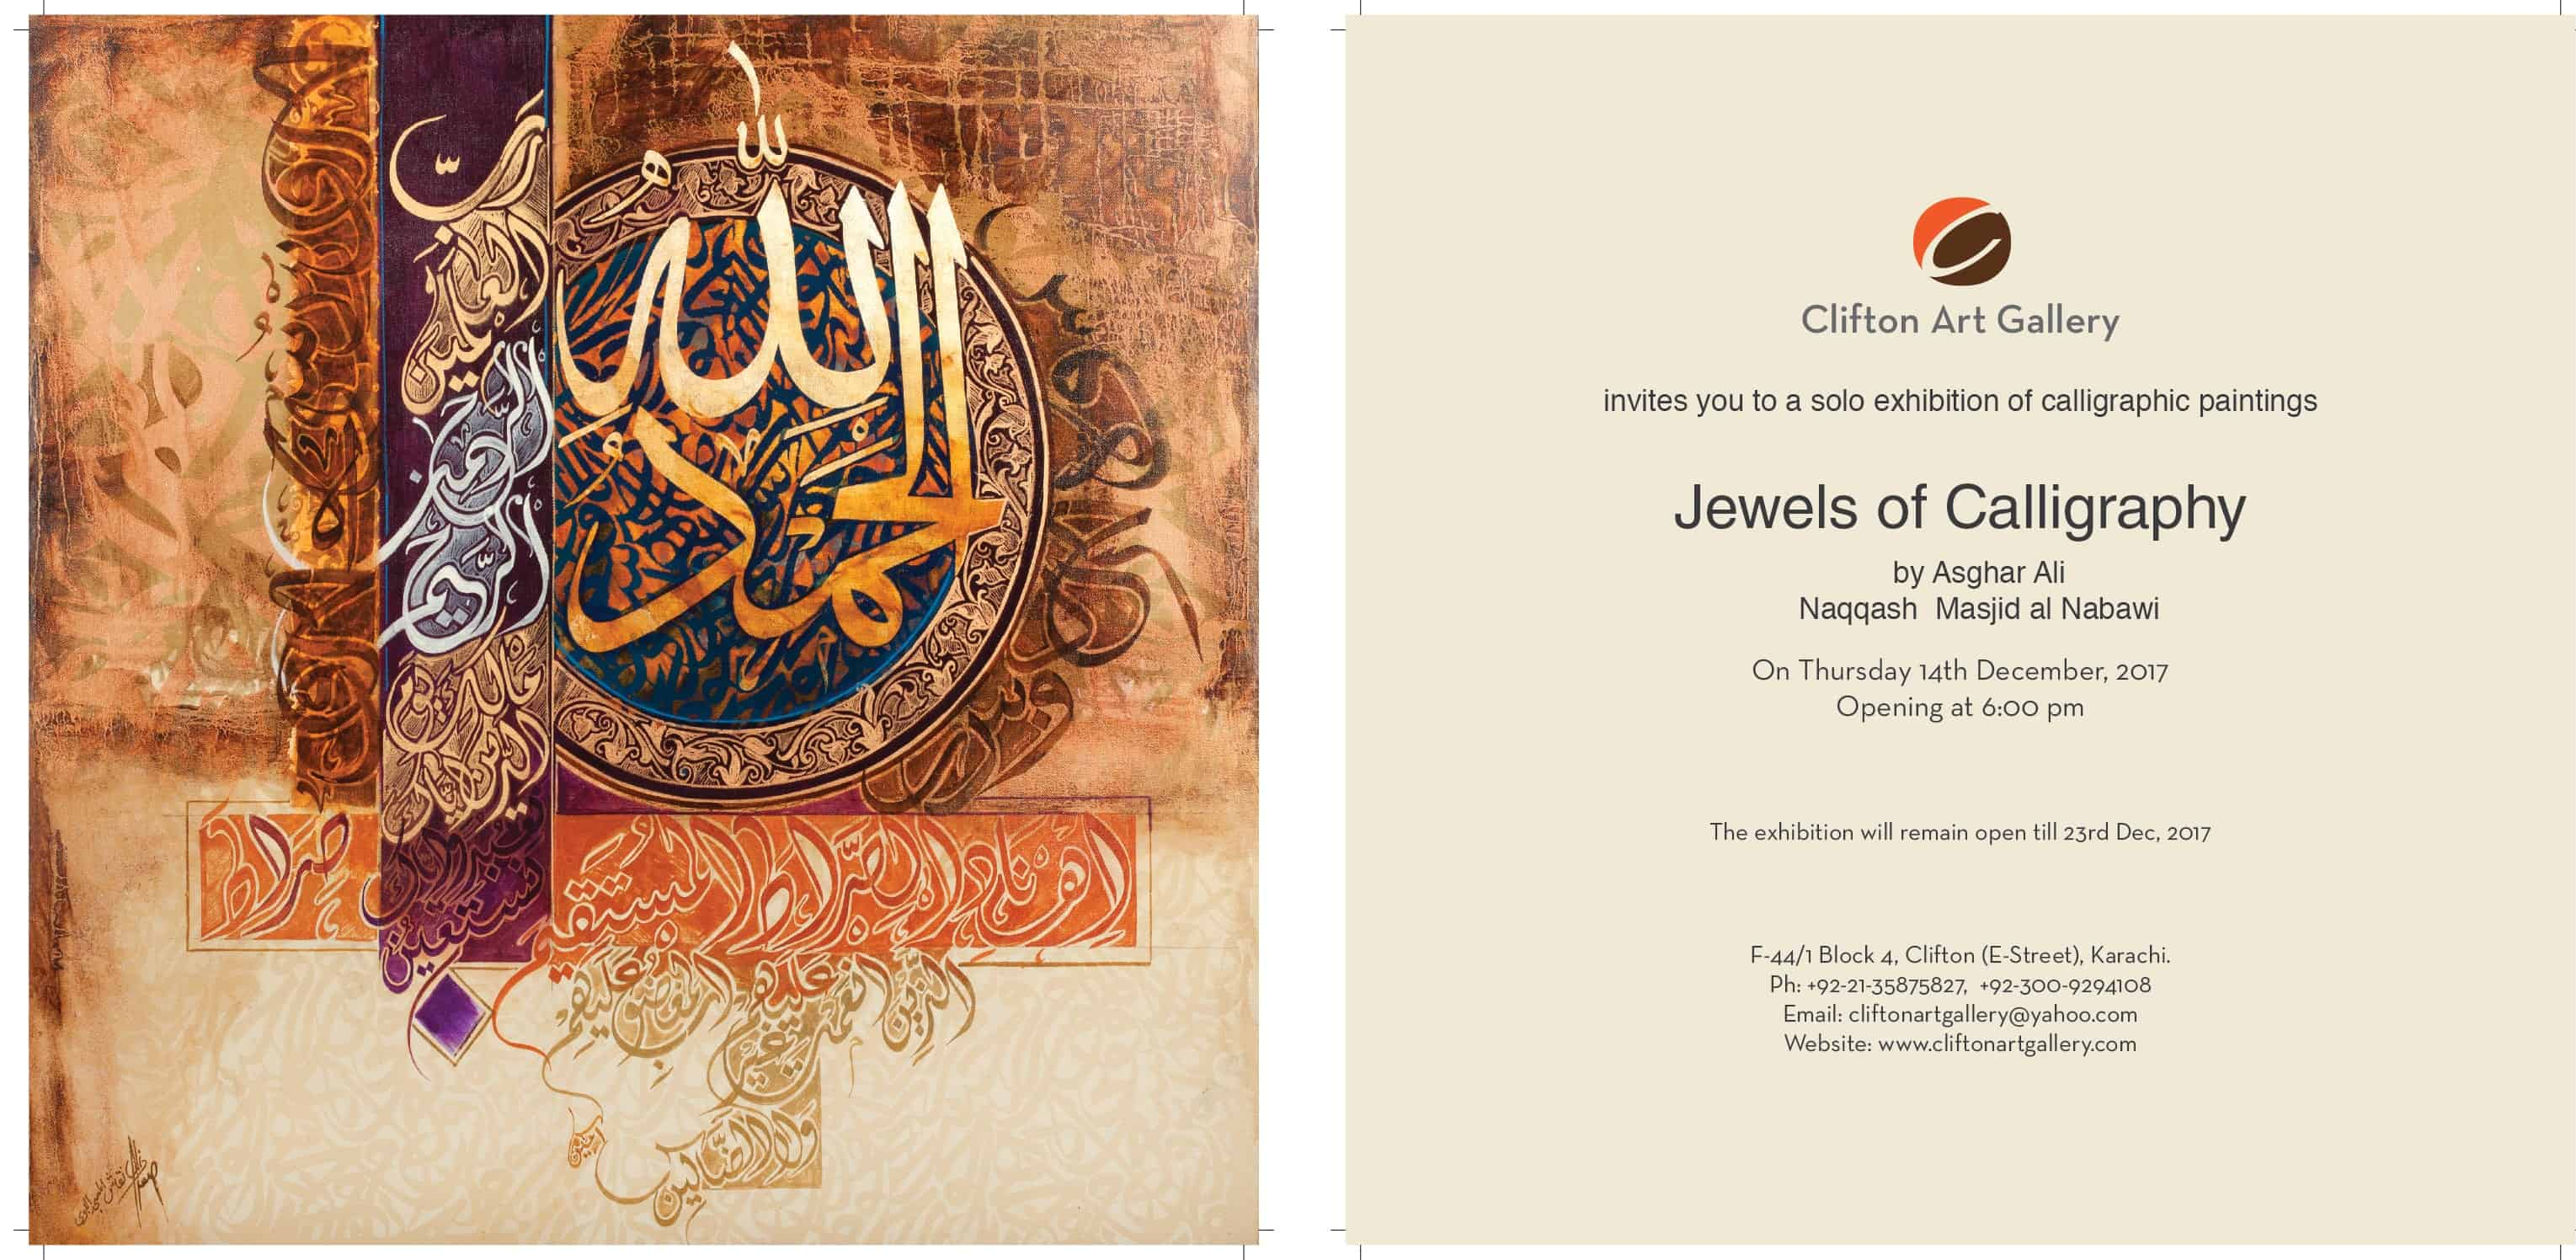 Invitation for exhibition of paintings choice image invitation invitation letter for painting exhibition gallery invitation invitation for exhibition of paintings images invitation sample invitation stopboris Images